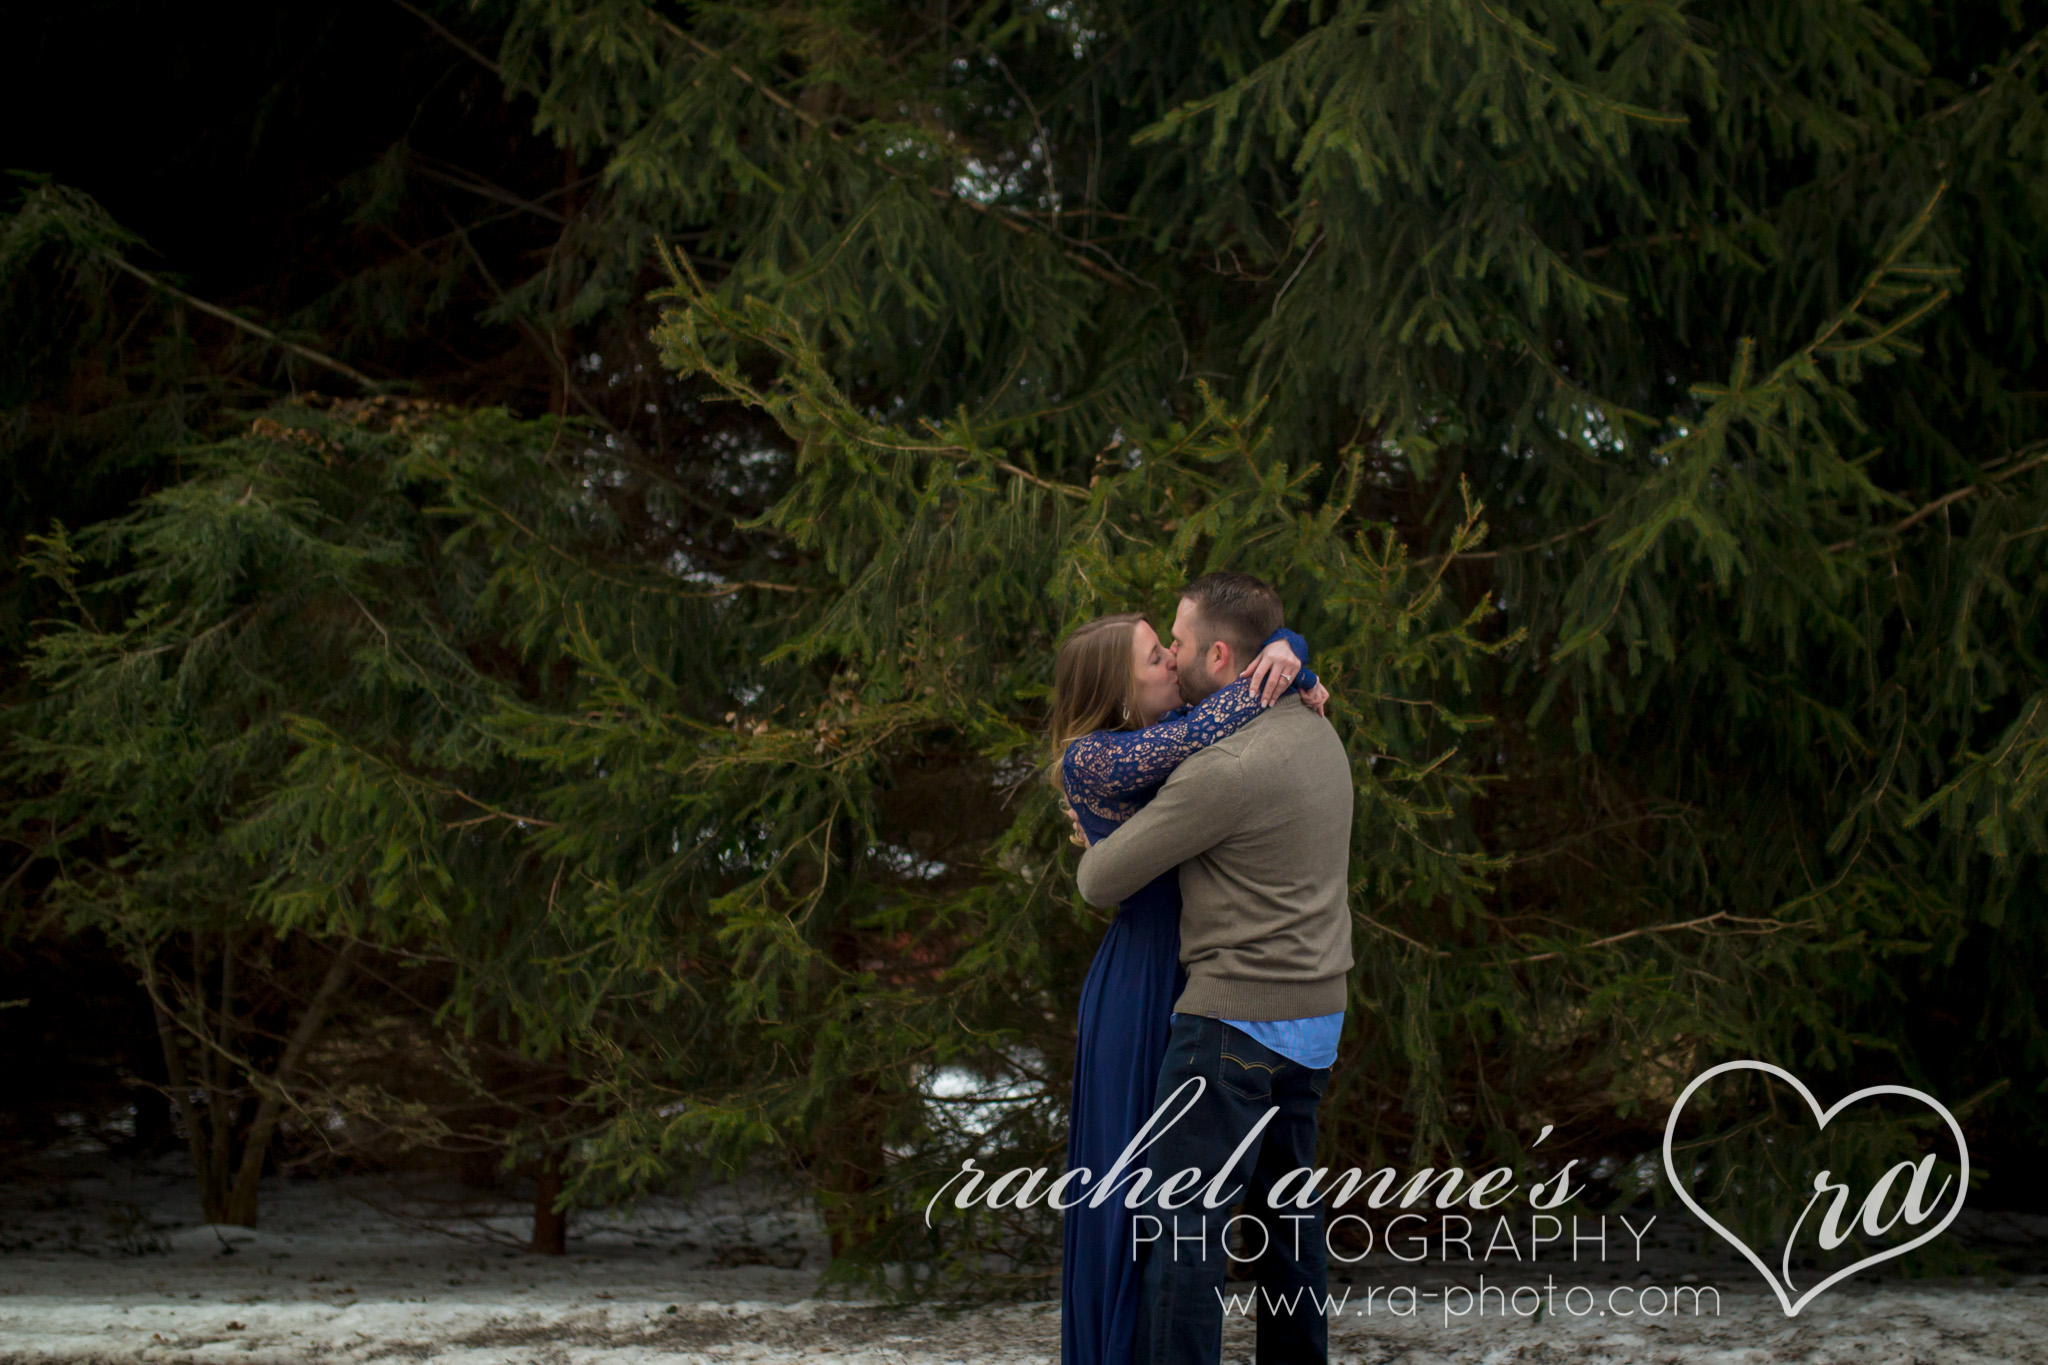 062-JKM-DUBOIS-PA-ENGAGEMENT-PHOTOGRAPHY.jpg